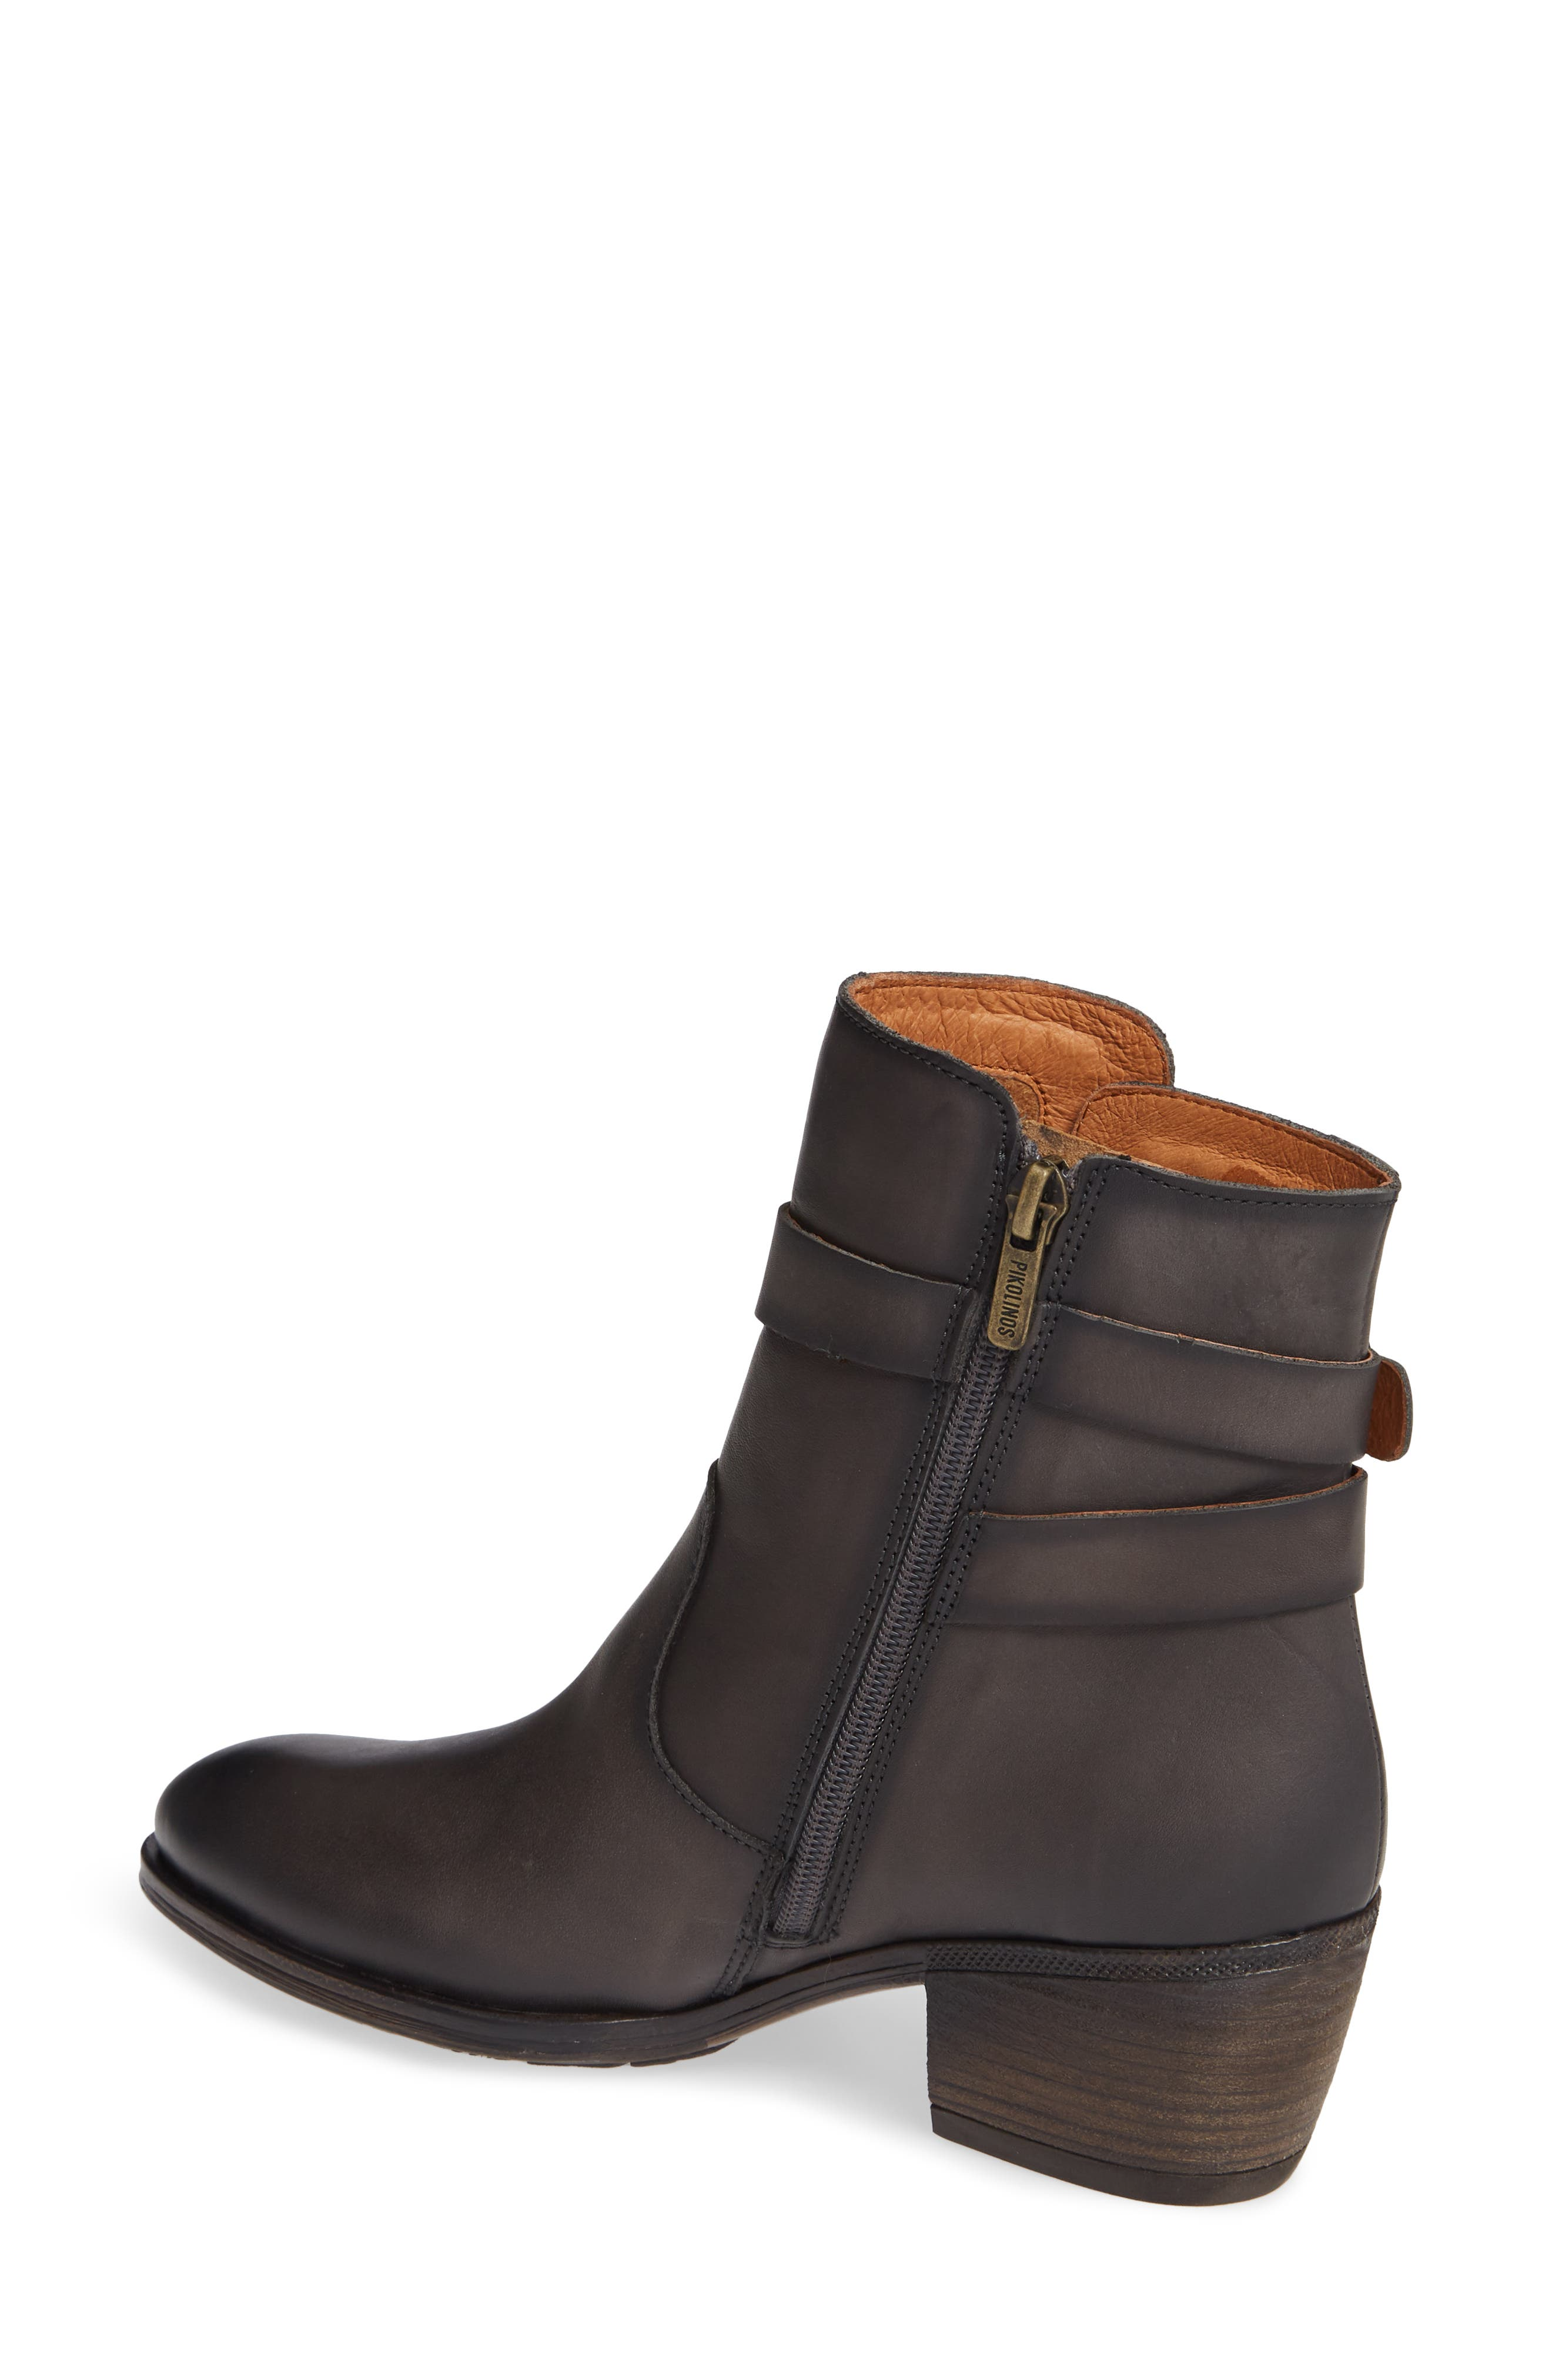 Baqueira Bootie,                             Alternate thumbnail 2, color,                             LEAD LEATHER